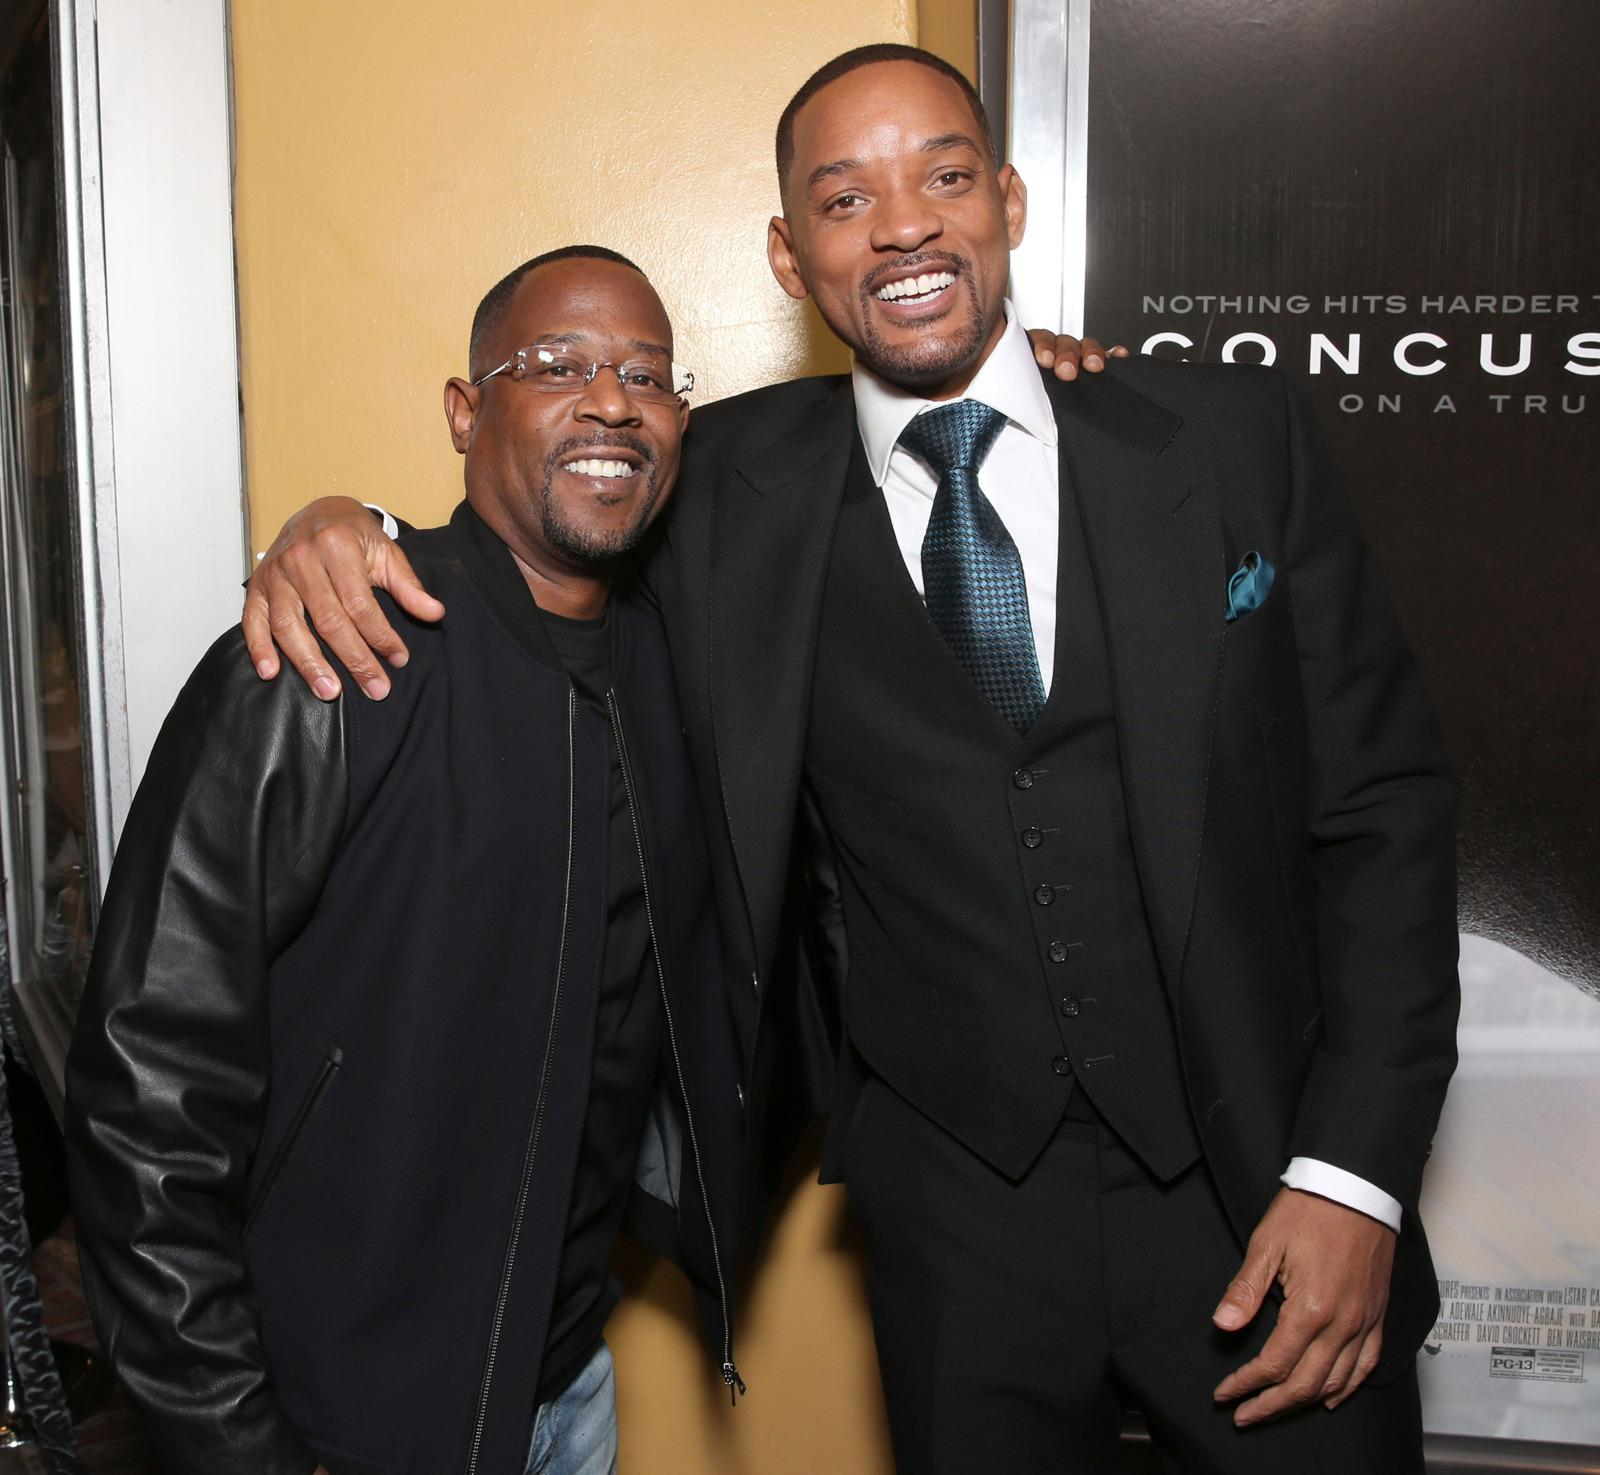 Will Smith Says Bad Boys 3 'Definitely' on the Way Following Profound Hug With Martin Lawrence